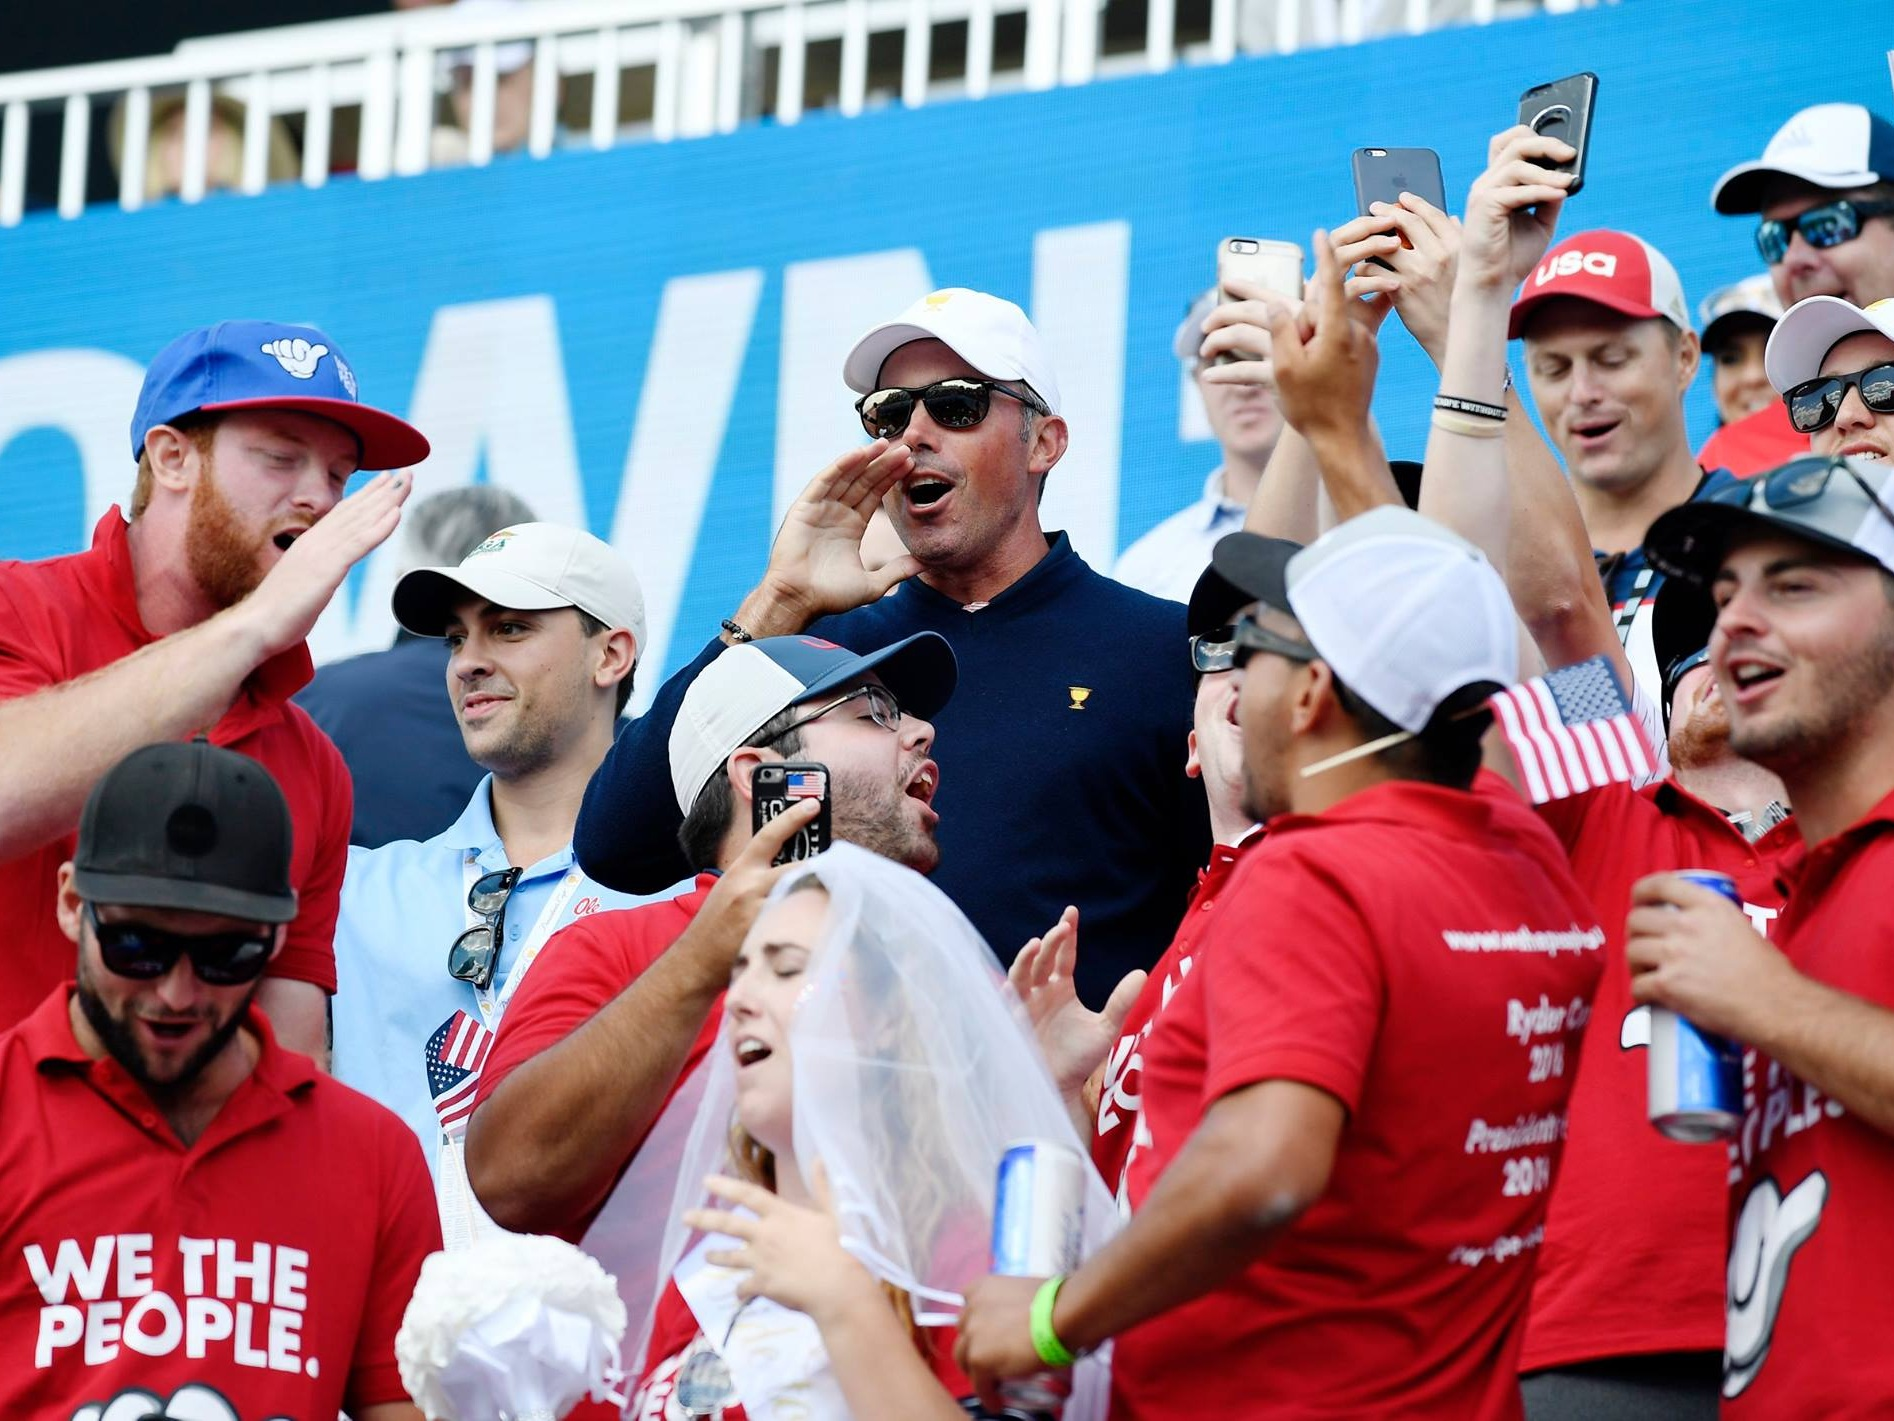 Matt Kuchar joins We The People supporters cheering on Team USA!